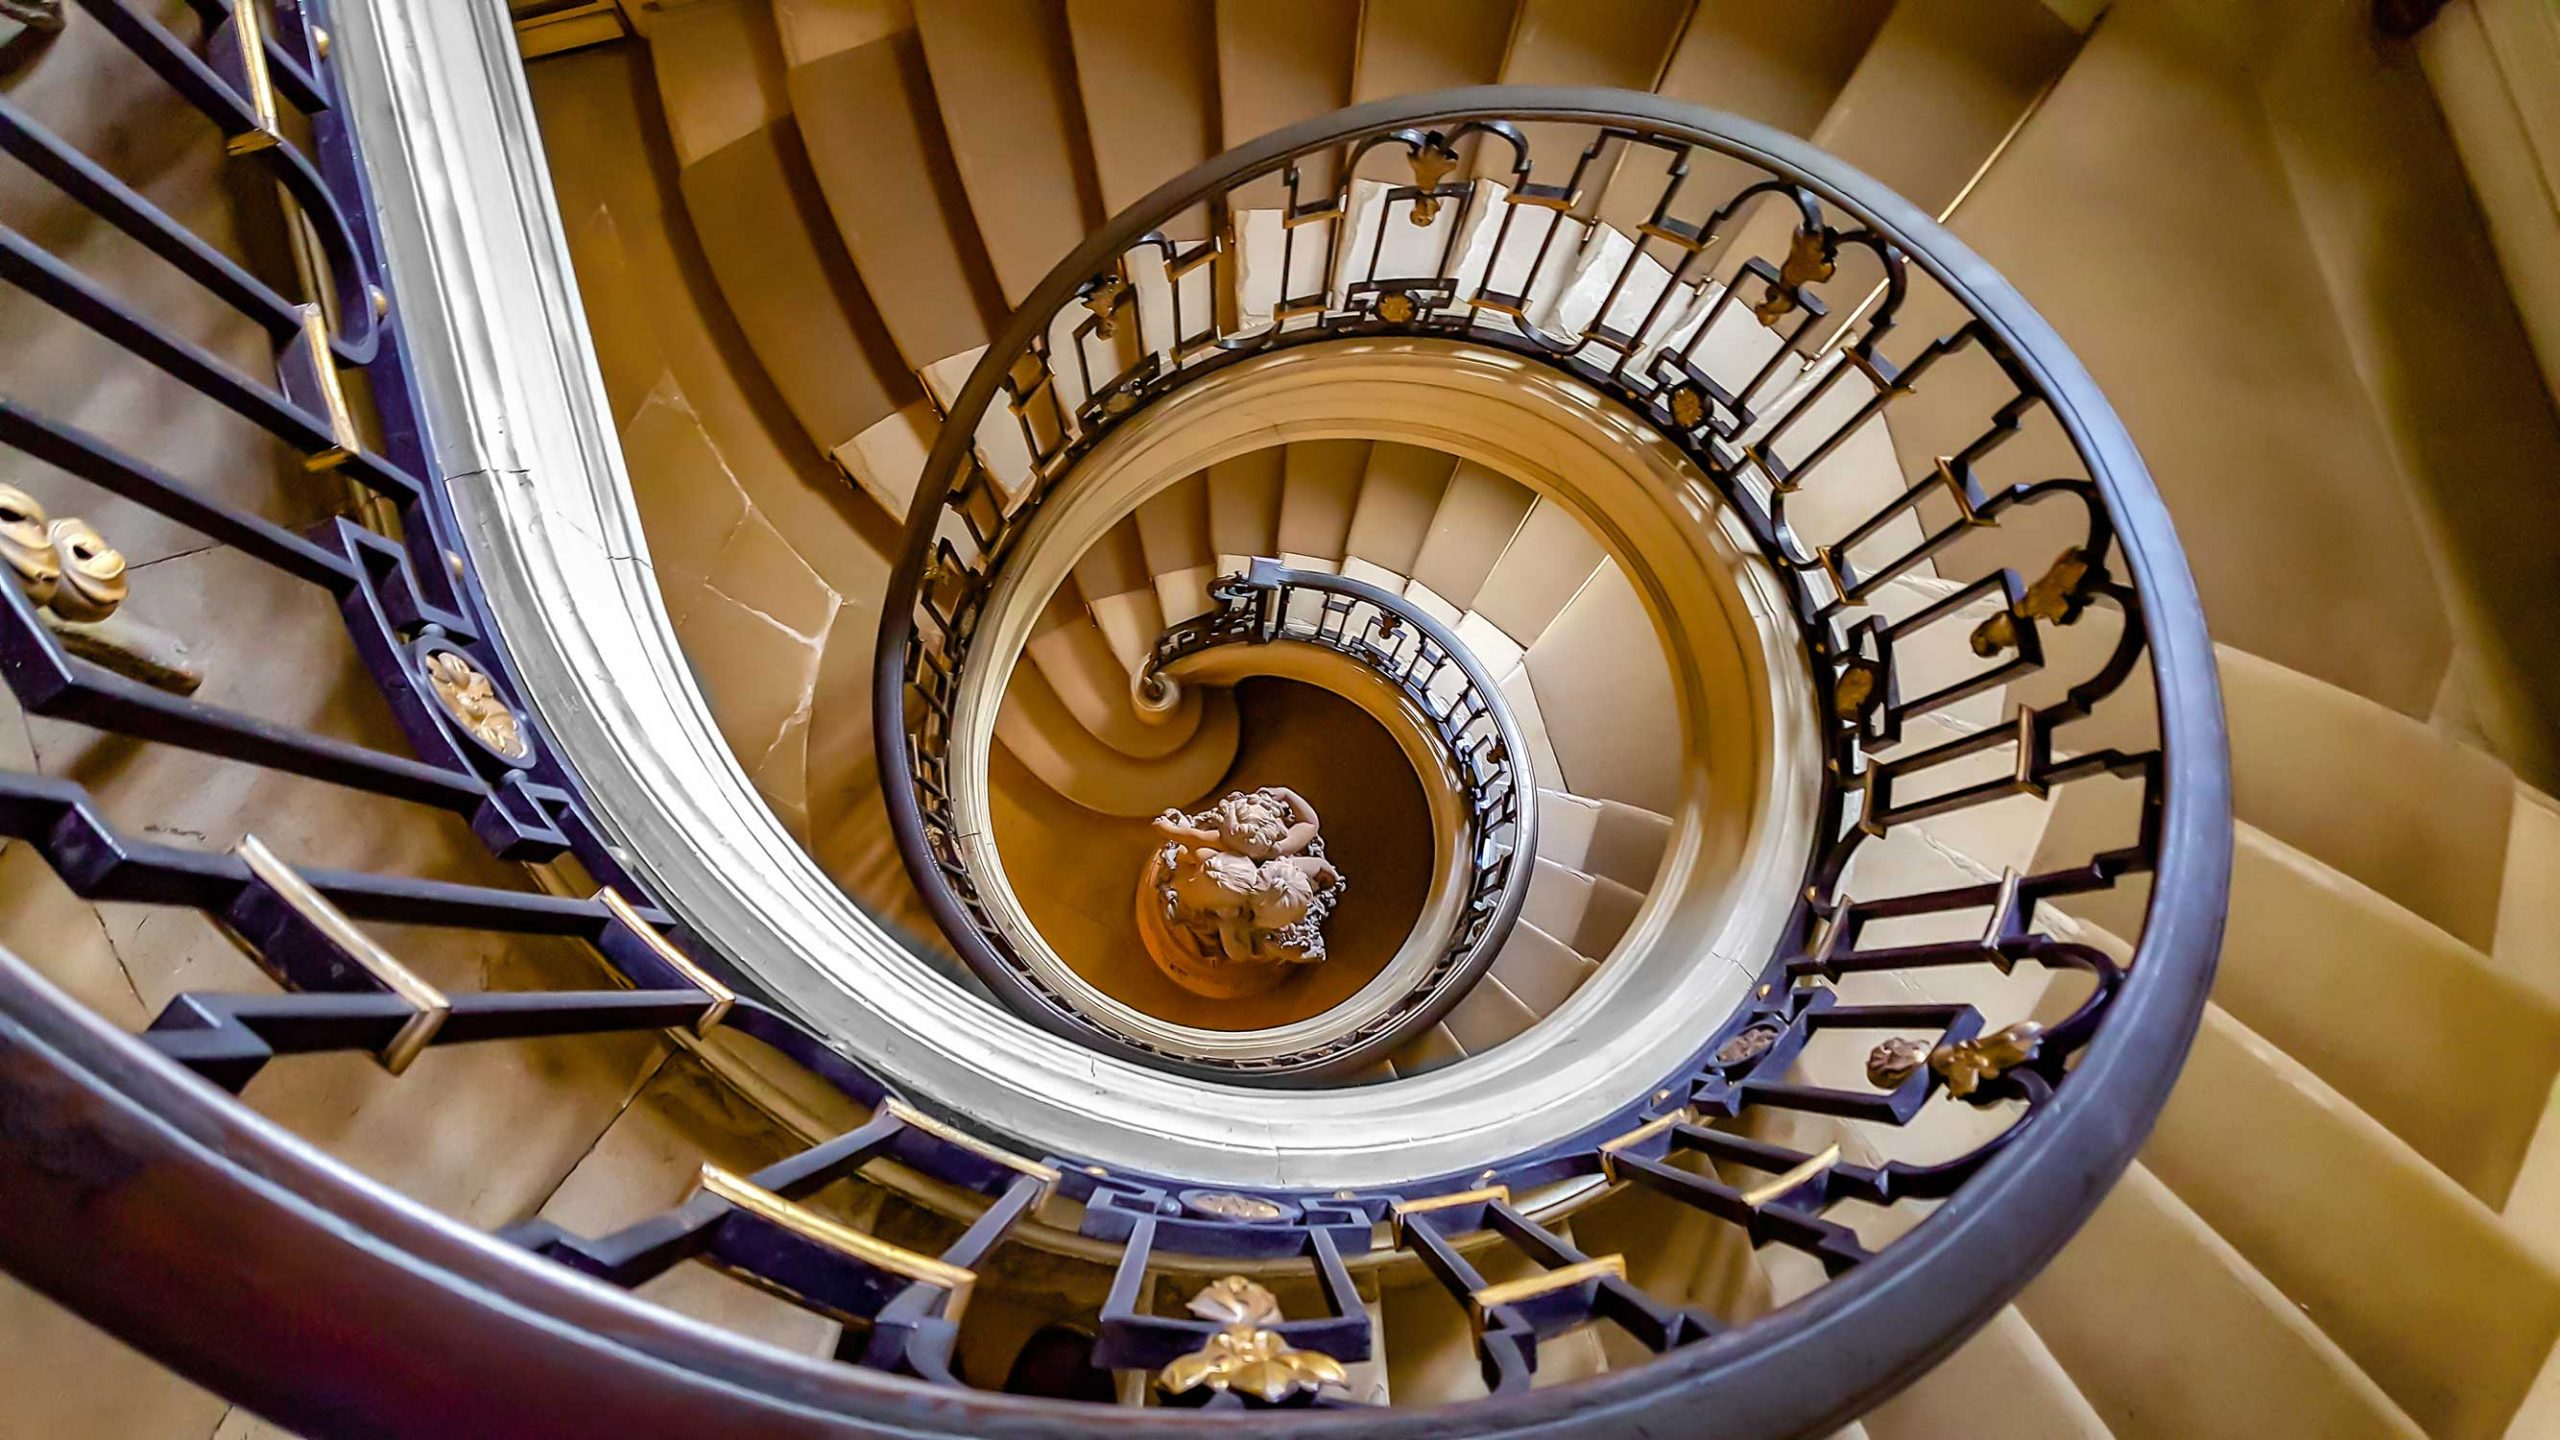 https://circaphiles.com/app/uploads/2020/10/Circaphiles-home-Amy-Barnard-All-rights-reserved_Spiral-Stairs-scaled.jpg